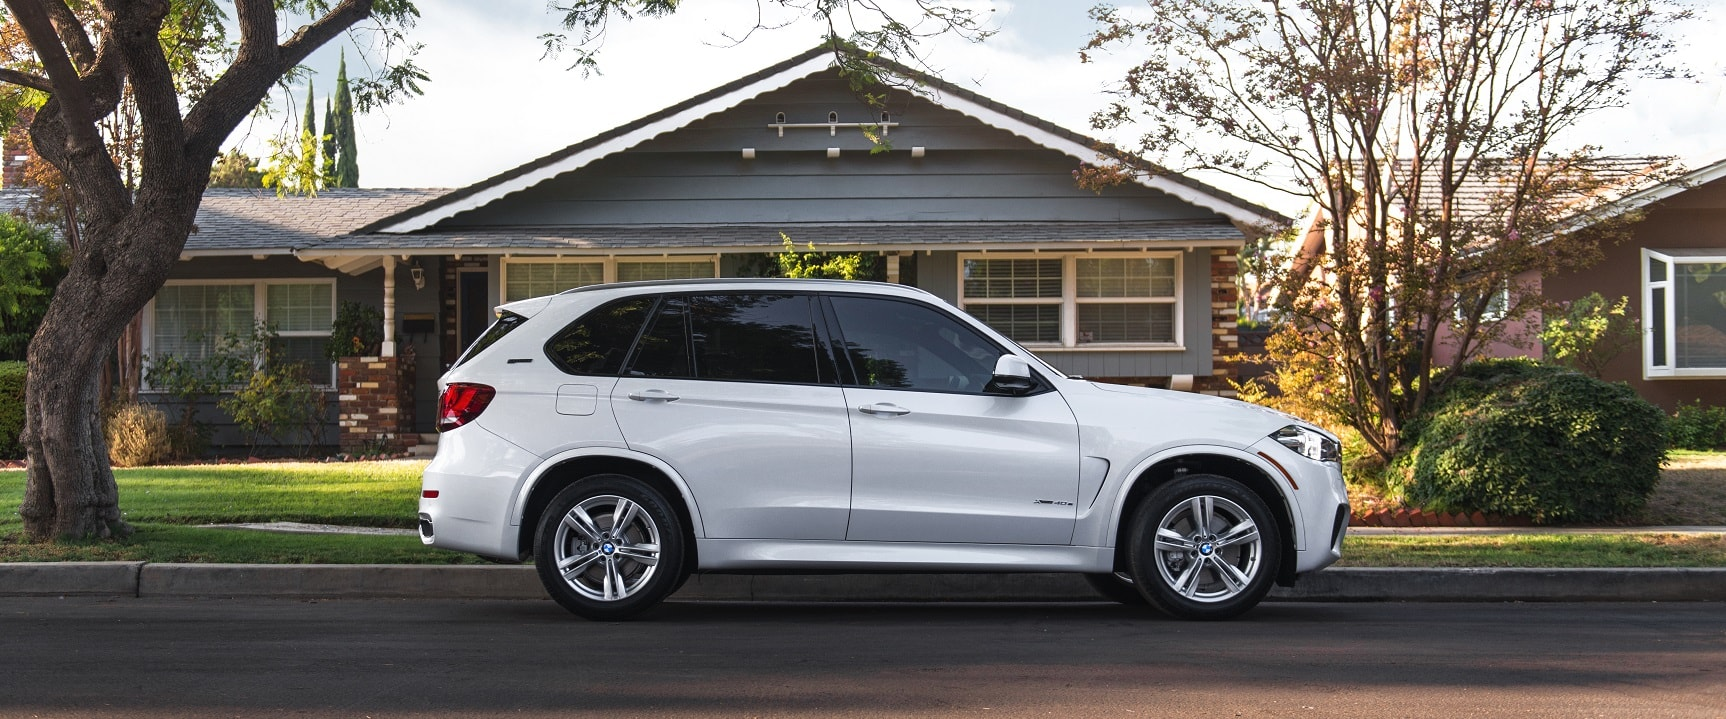 Test Drive A 2018 BMW X5 In Freehold, NJ